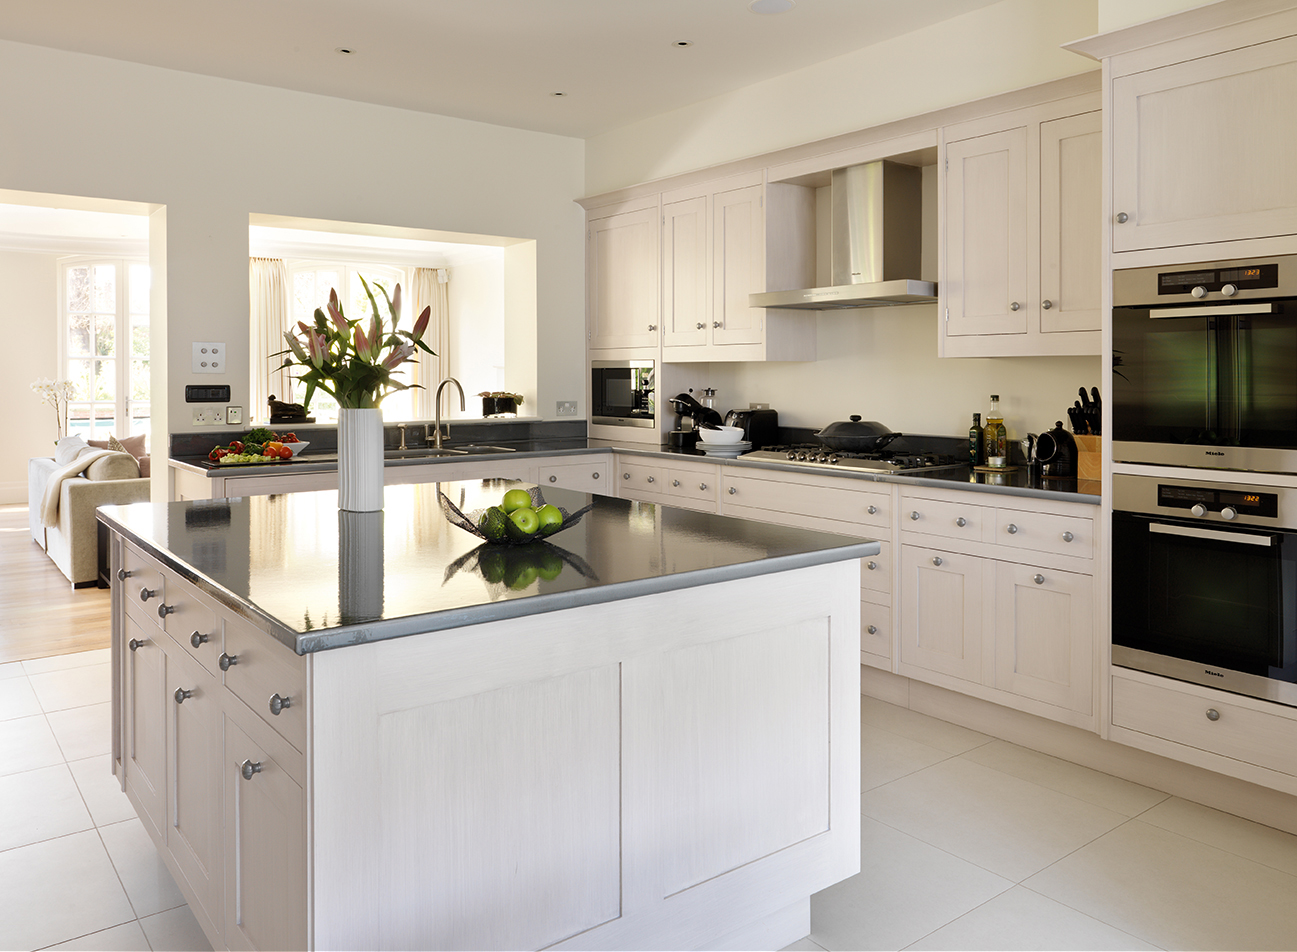 Kitchen Worktops - Pyrolave